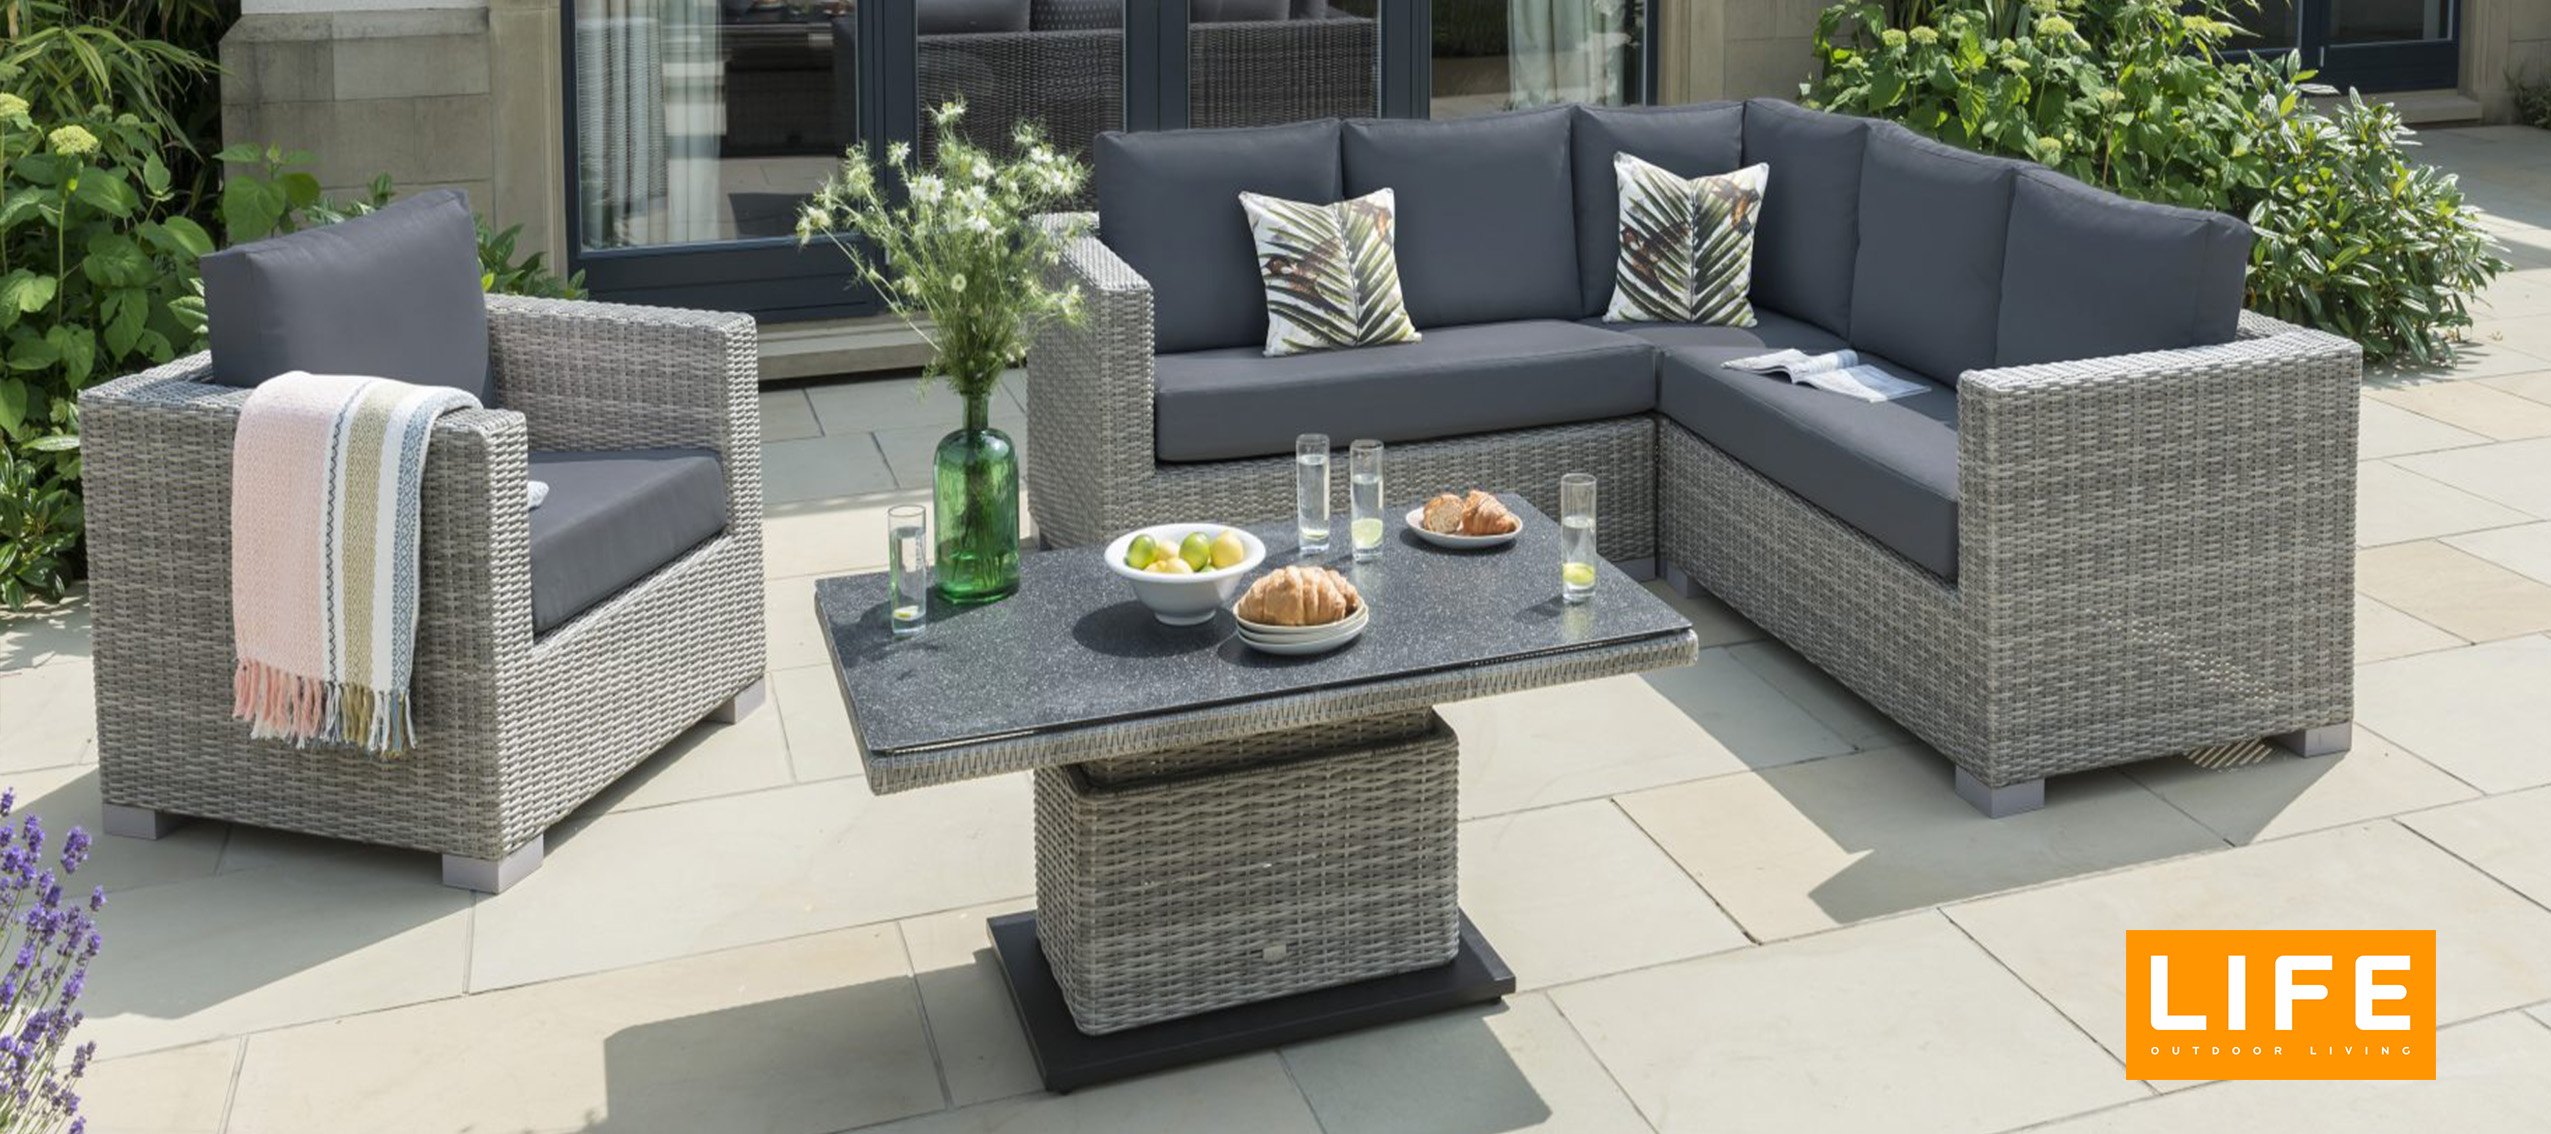 Life Garden furniture